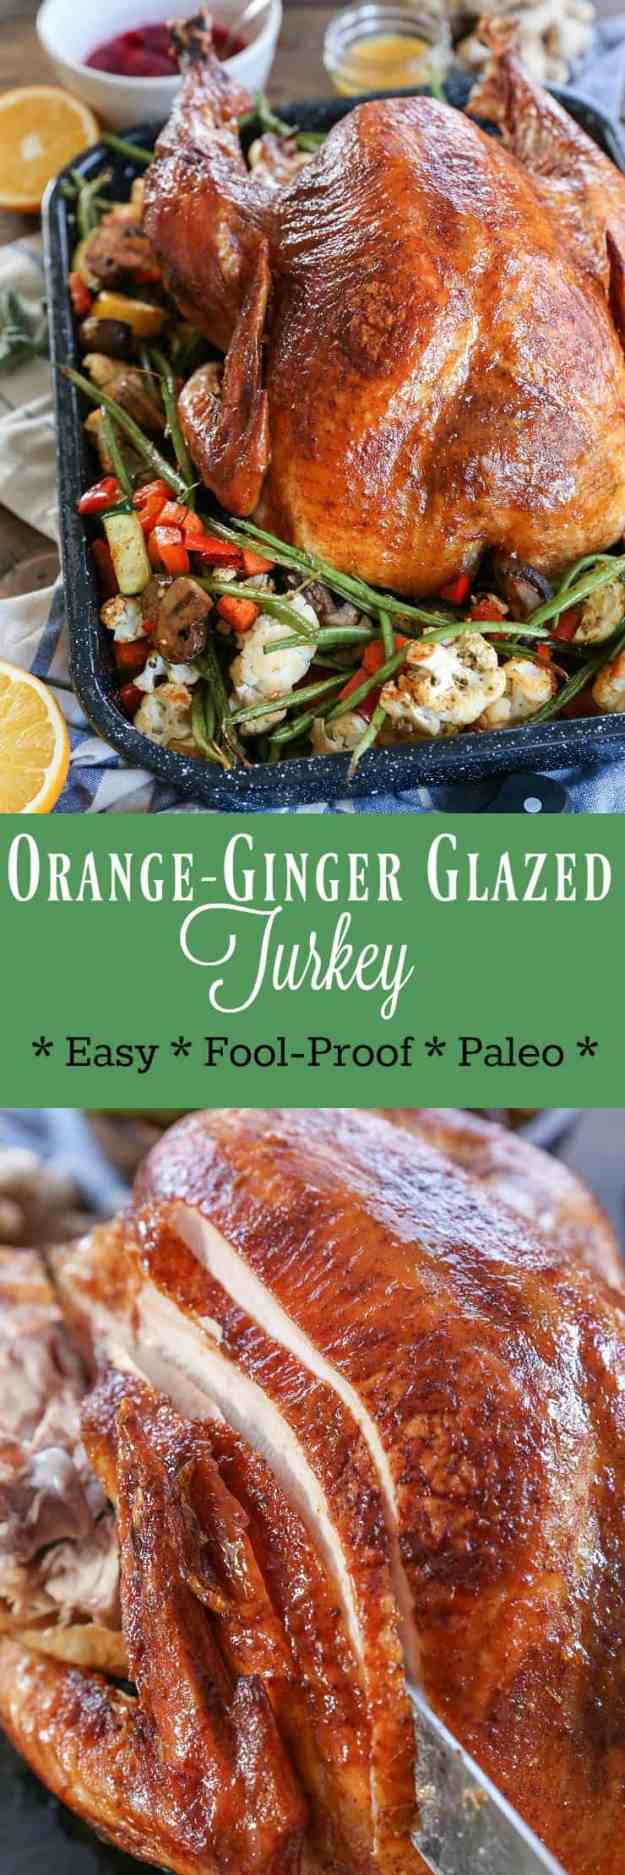 Orange-Ginger Glazed Turkey - an easy, flavorful approach to Thanksgiving Turkey. Paleo, GF, healthy!